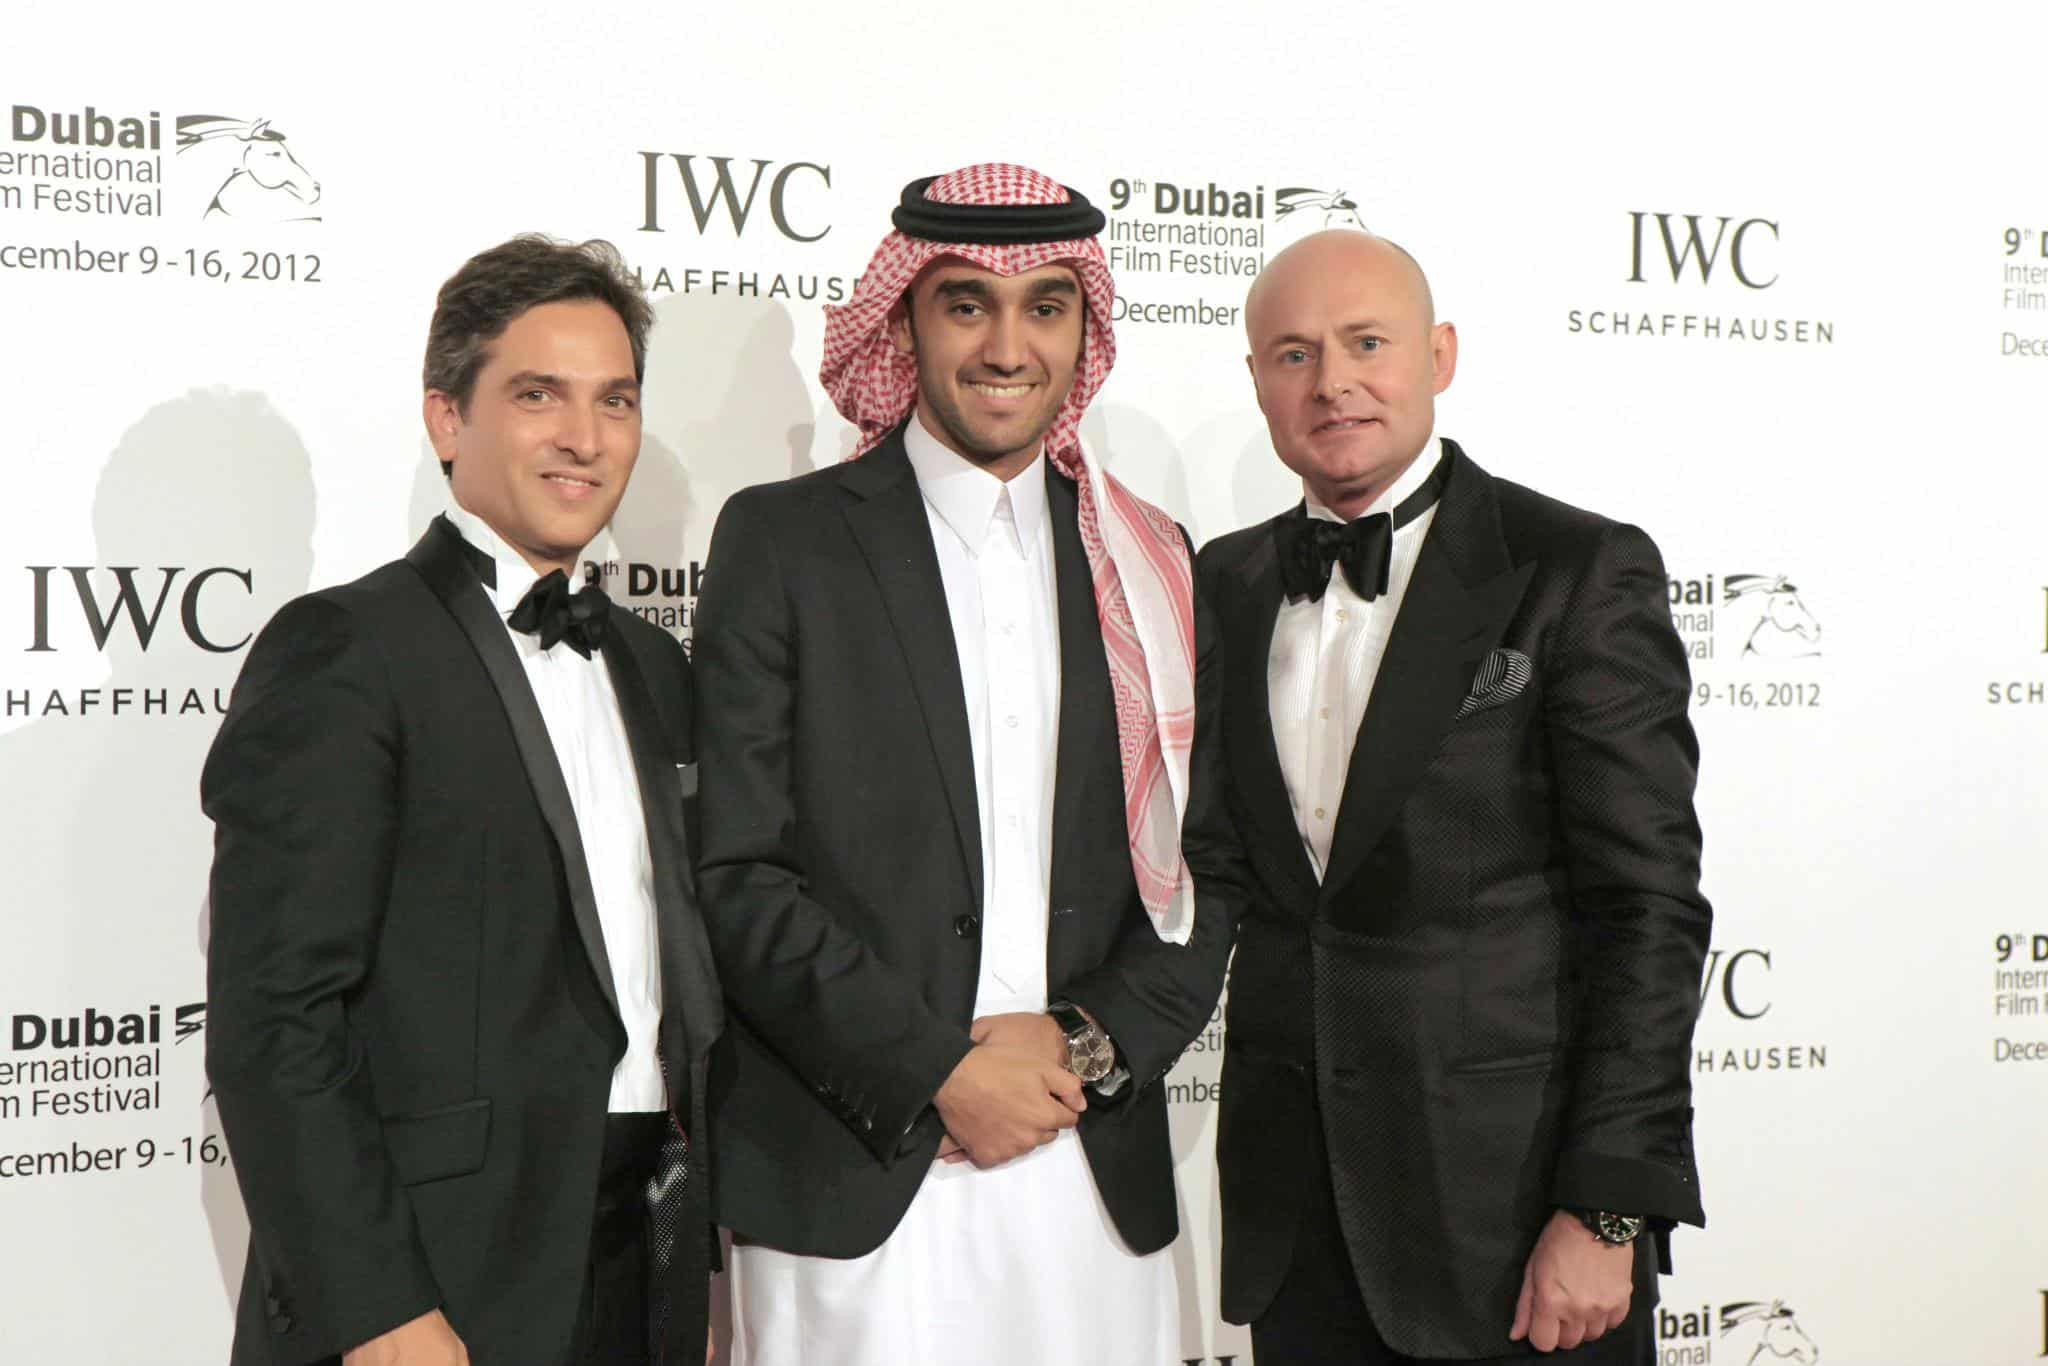 Maxime-Ferte-IWC-Middle-East-Regional-Director-IWC-Saudi-Ambassador-His-Royal-Highness-Prince-Abdulaziz-bin-Turki-AlFaisal-AlSaud-and-Georges-Kern-CEO-IWC.